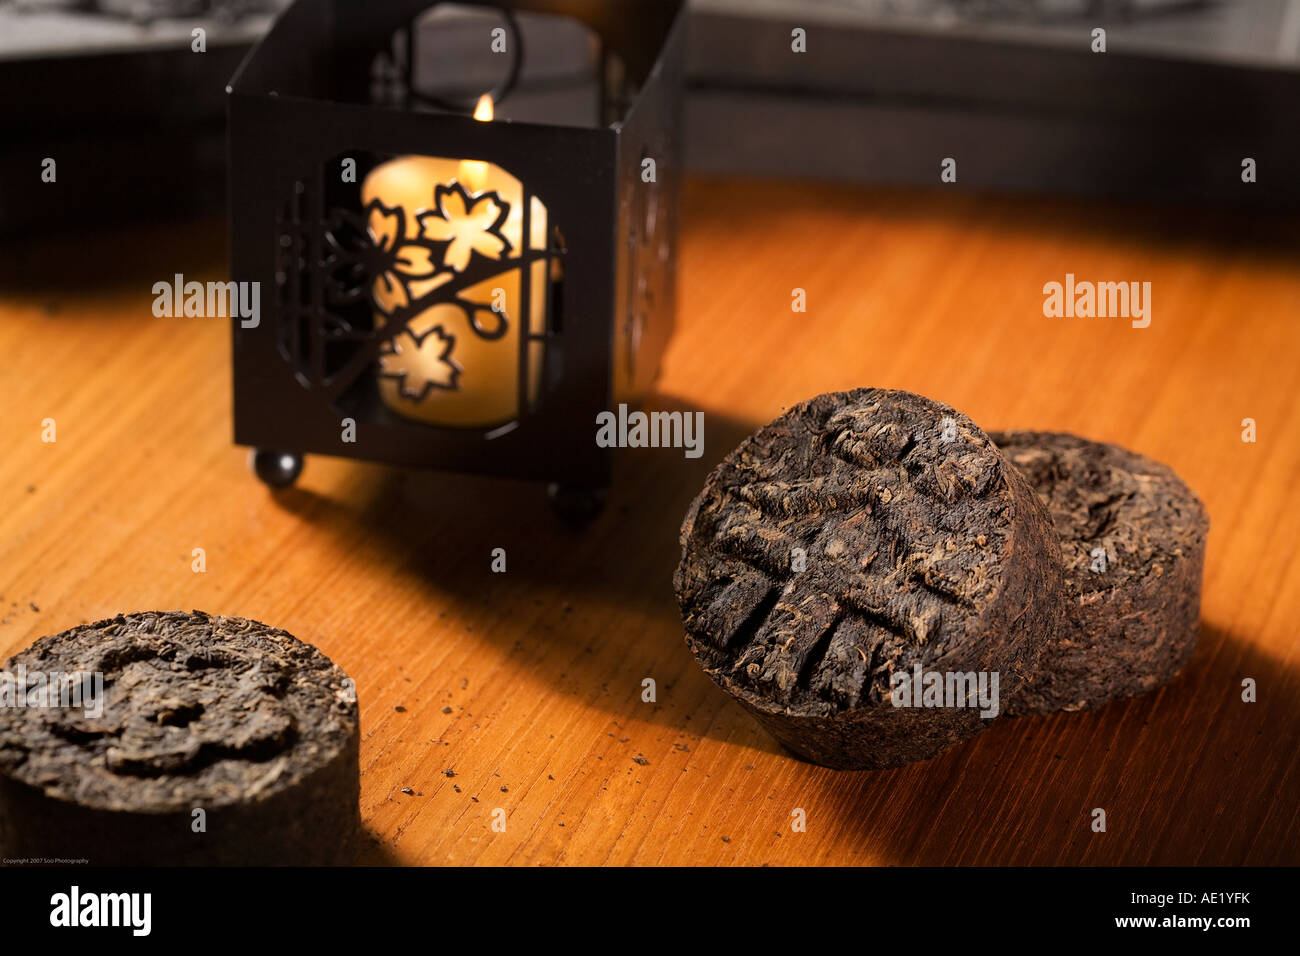 Tea rolls on a table adorned with distinct designs near a lit candle. Stock Photo